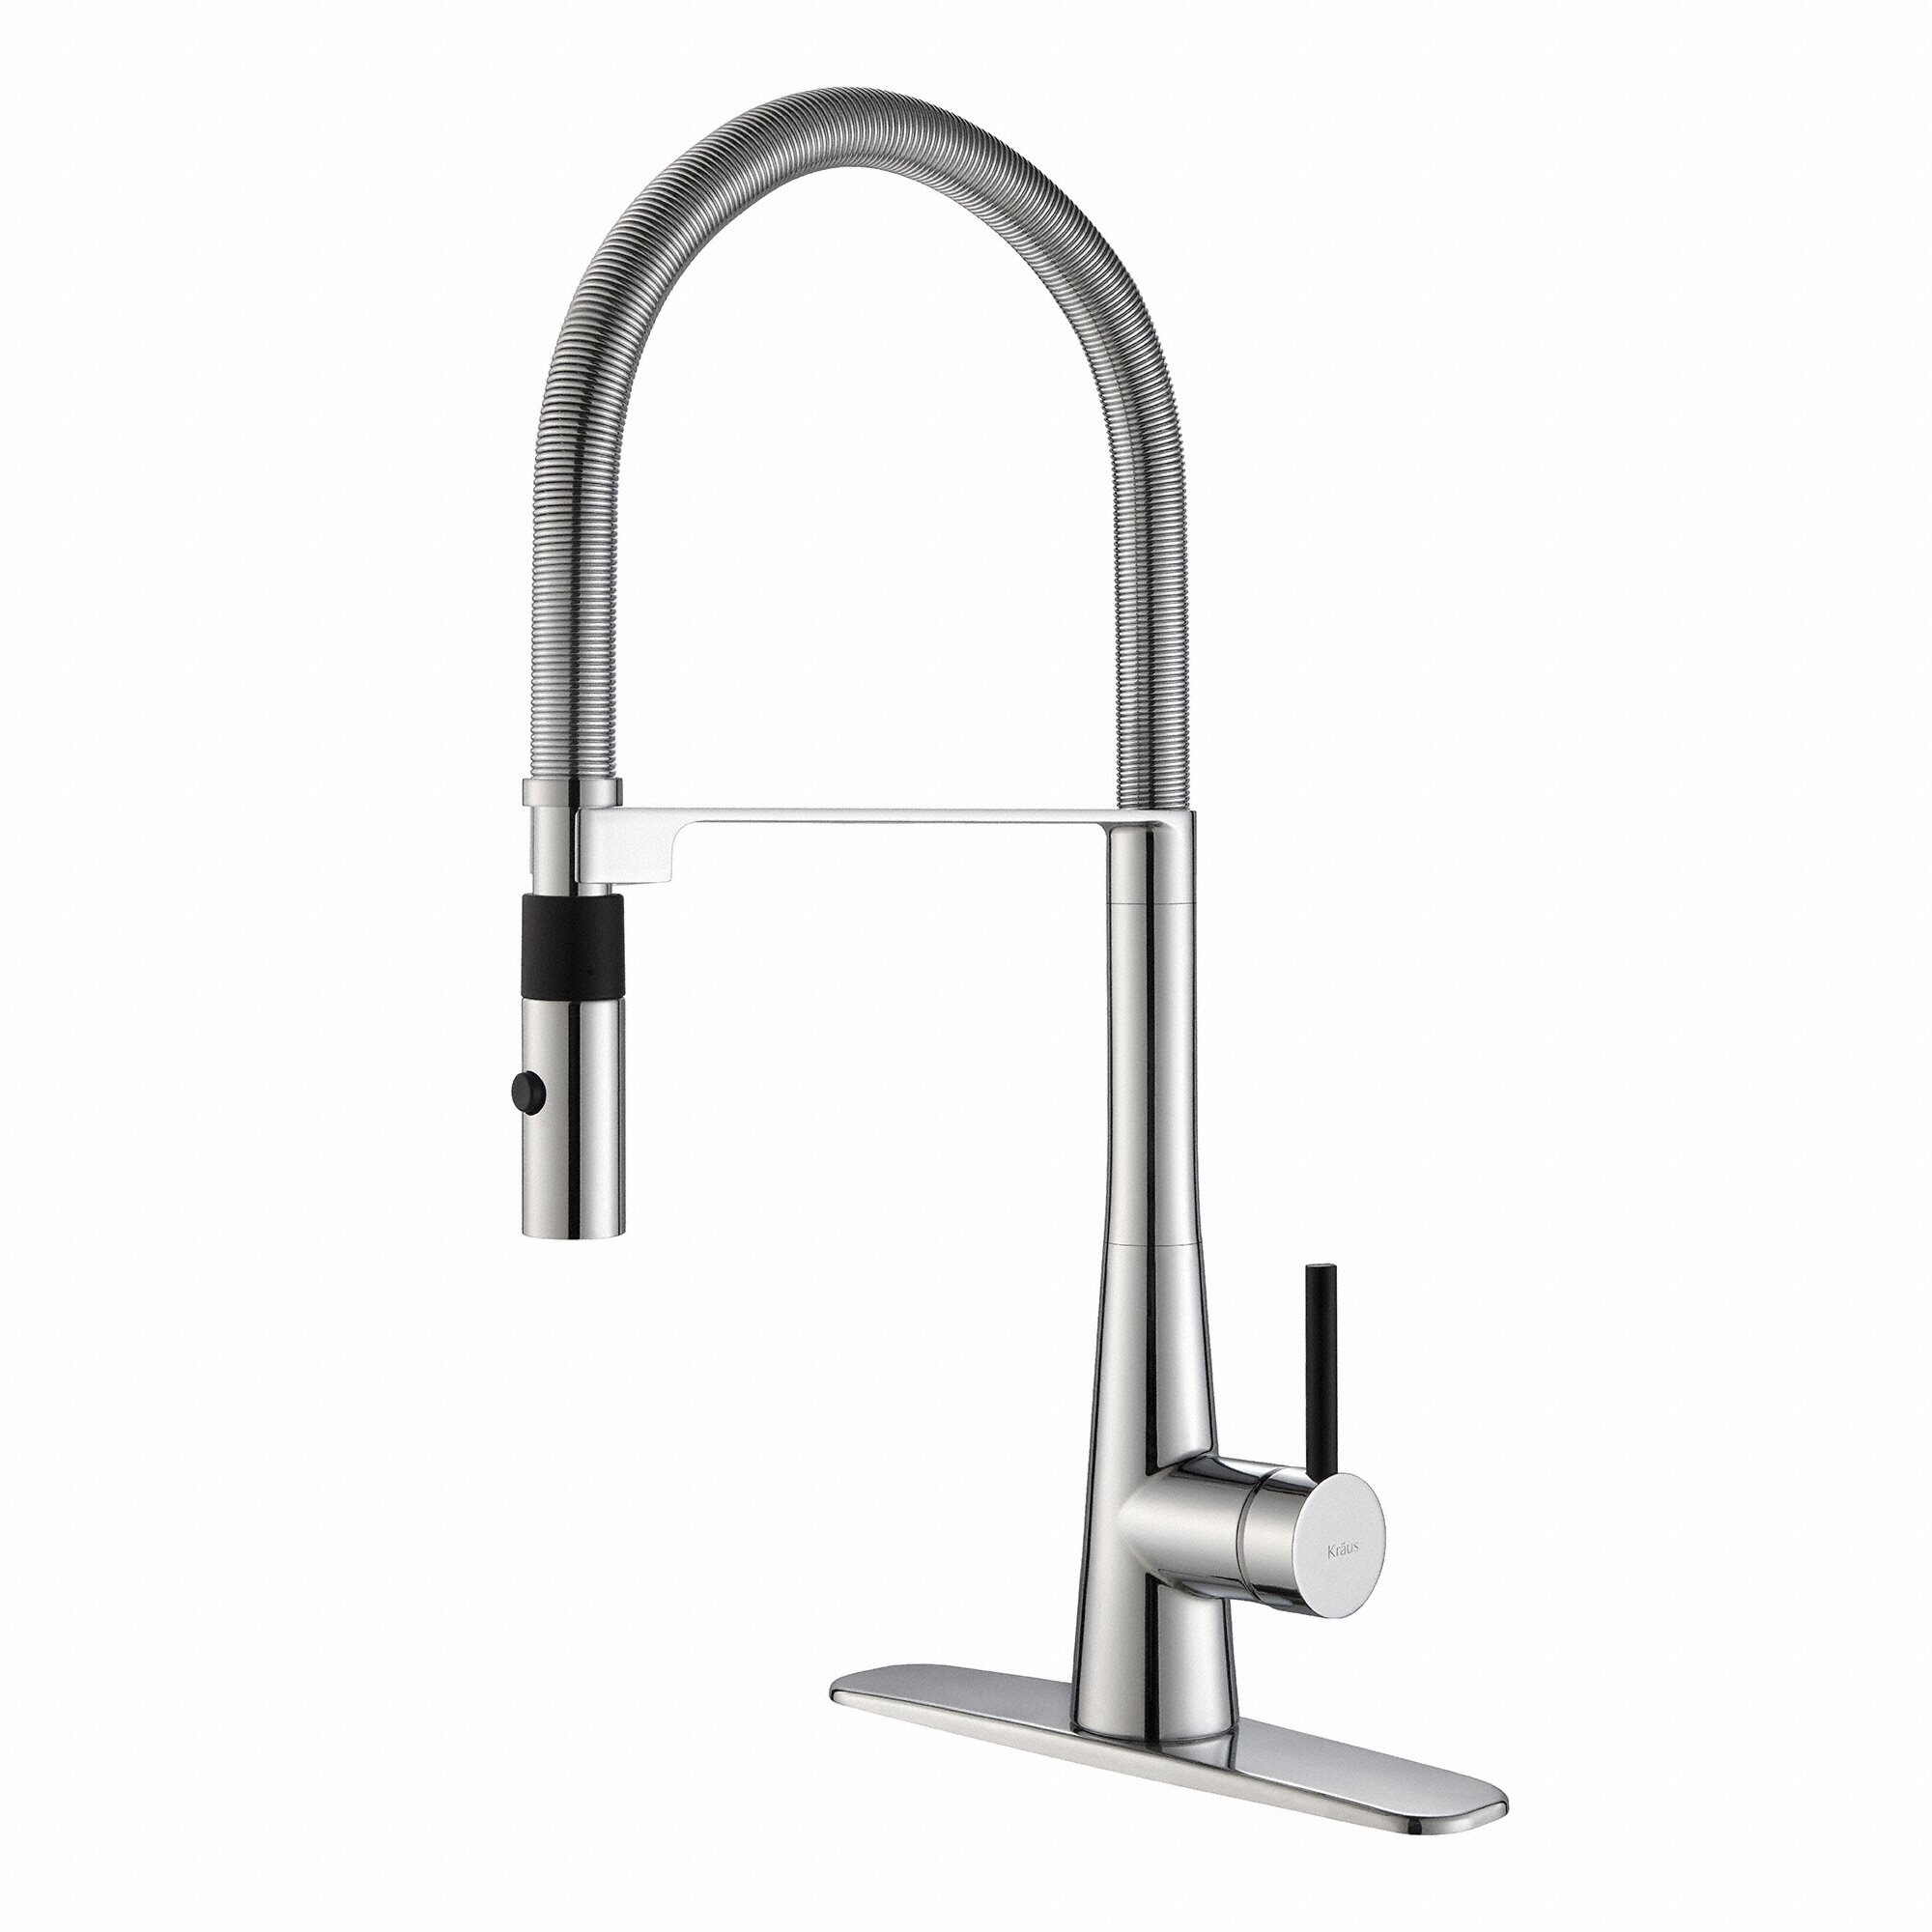 Kraus Crespo? Single Lever Commercial Style Kitchen Faucet with Flex ...